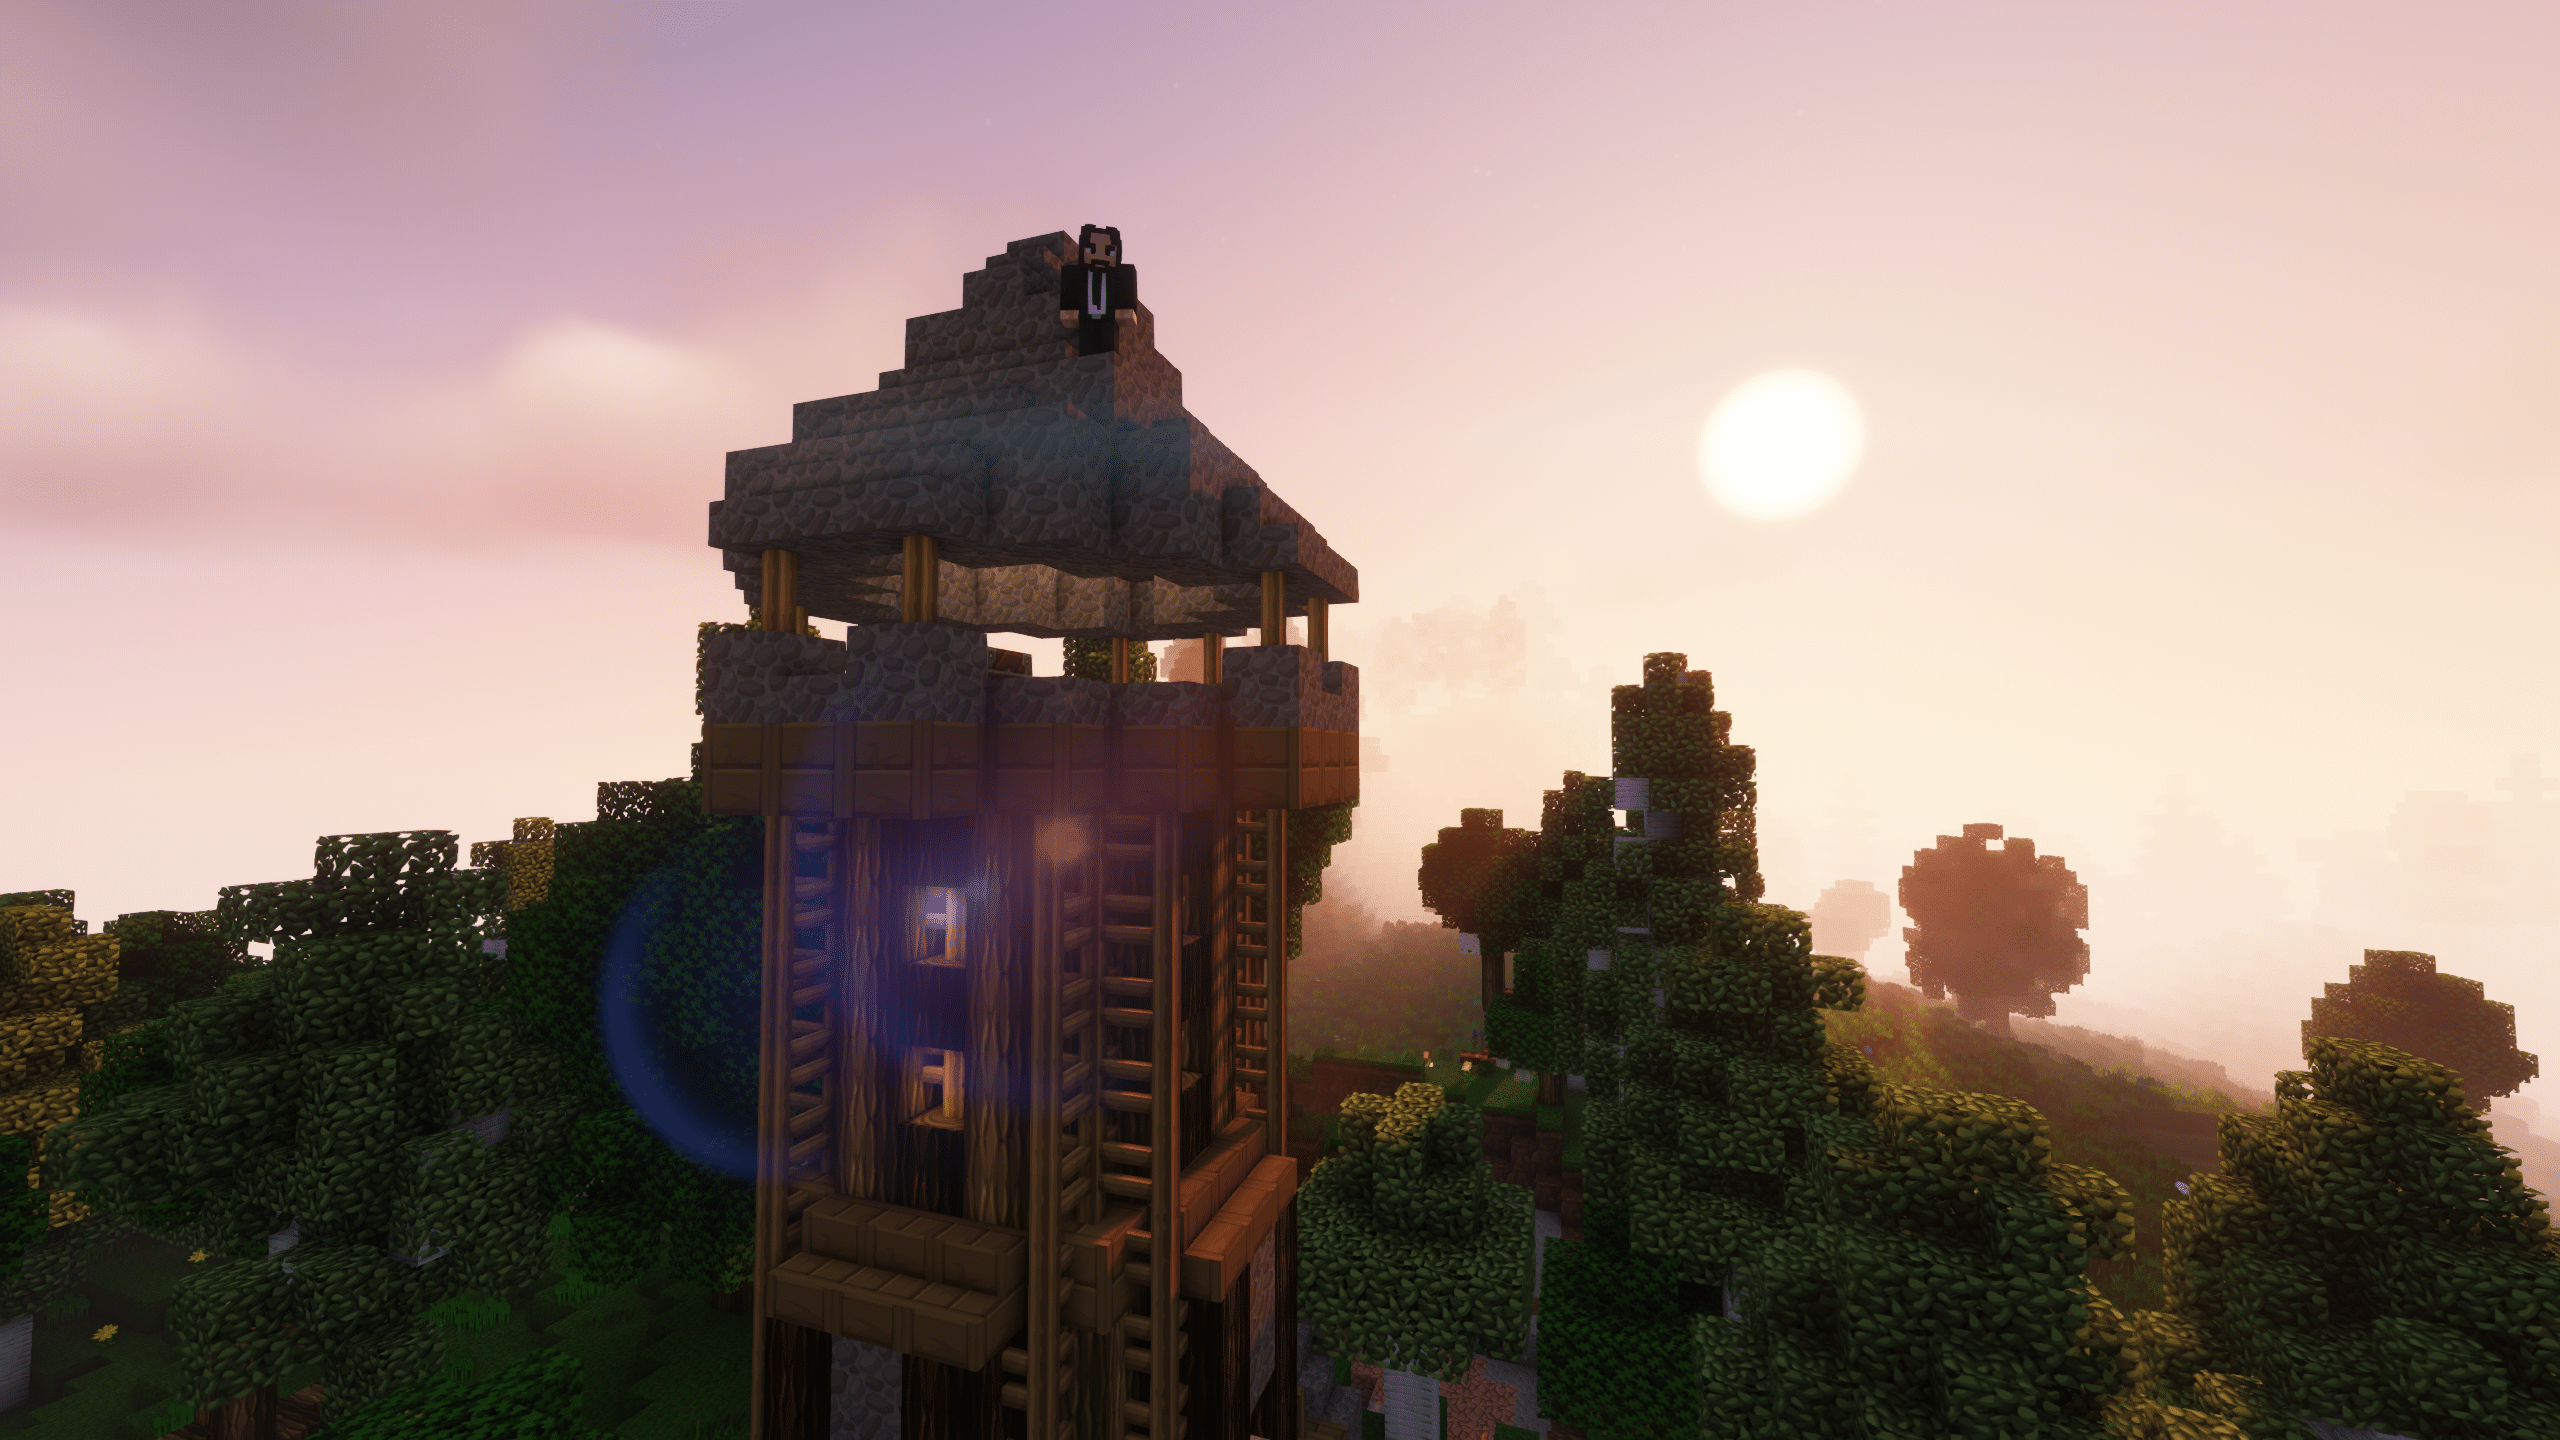 Minecraft Enigmatica 2: The Village Tower